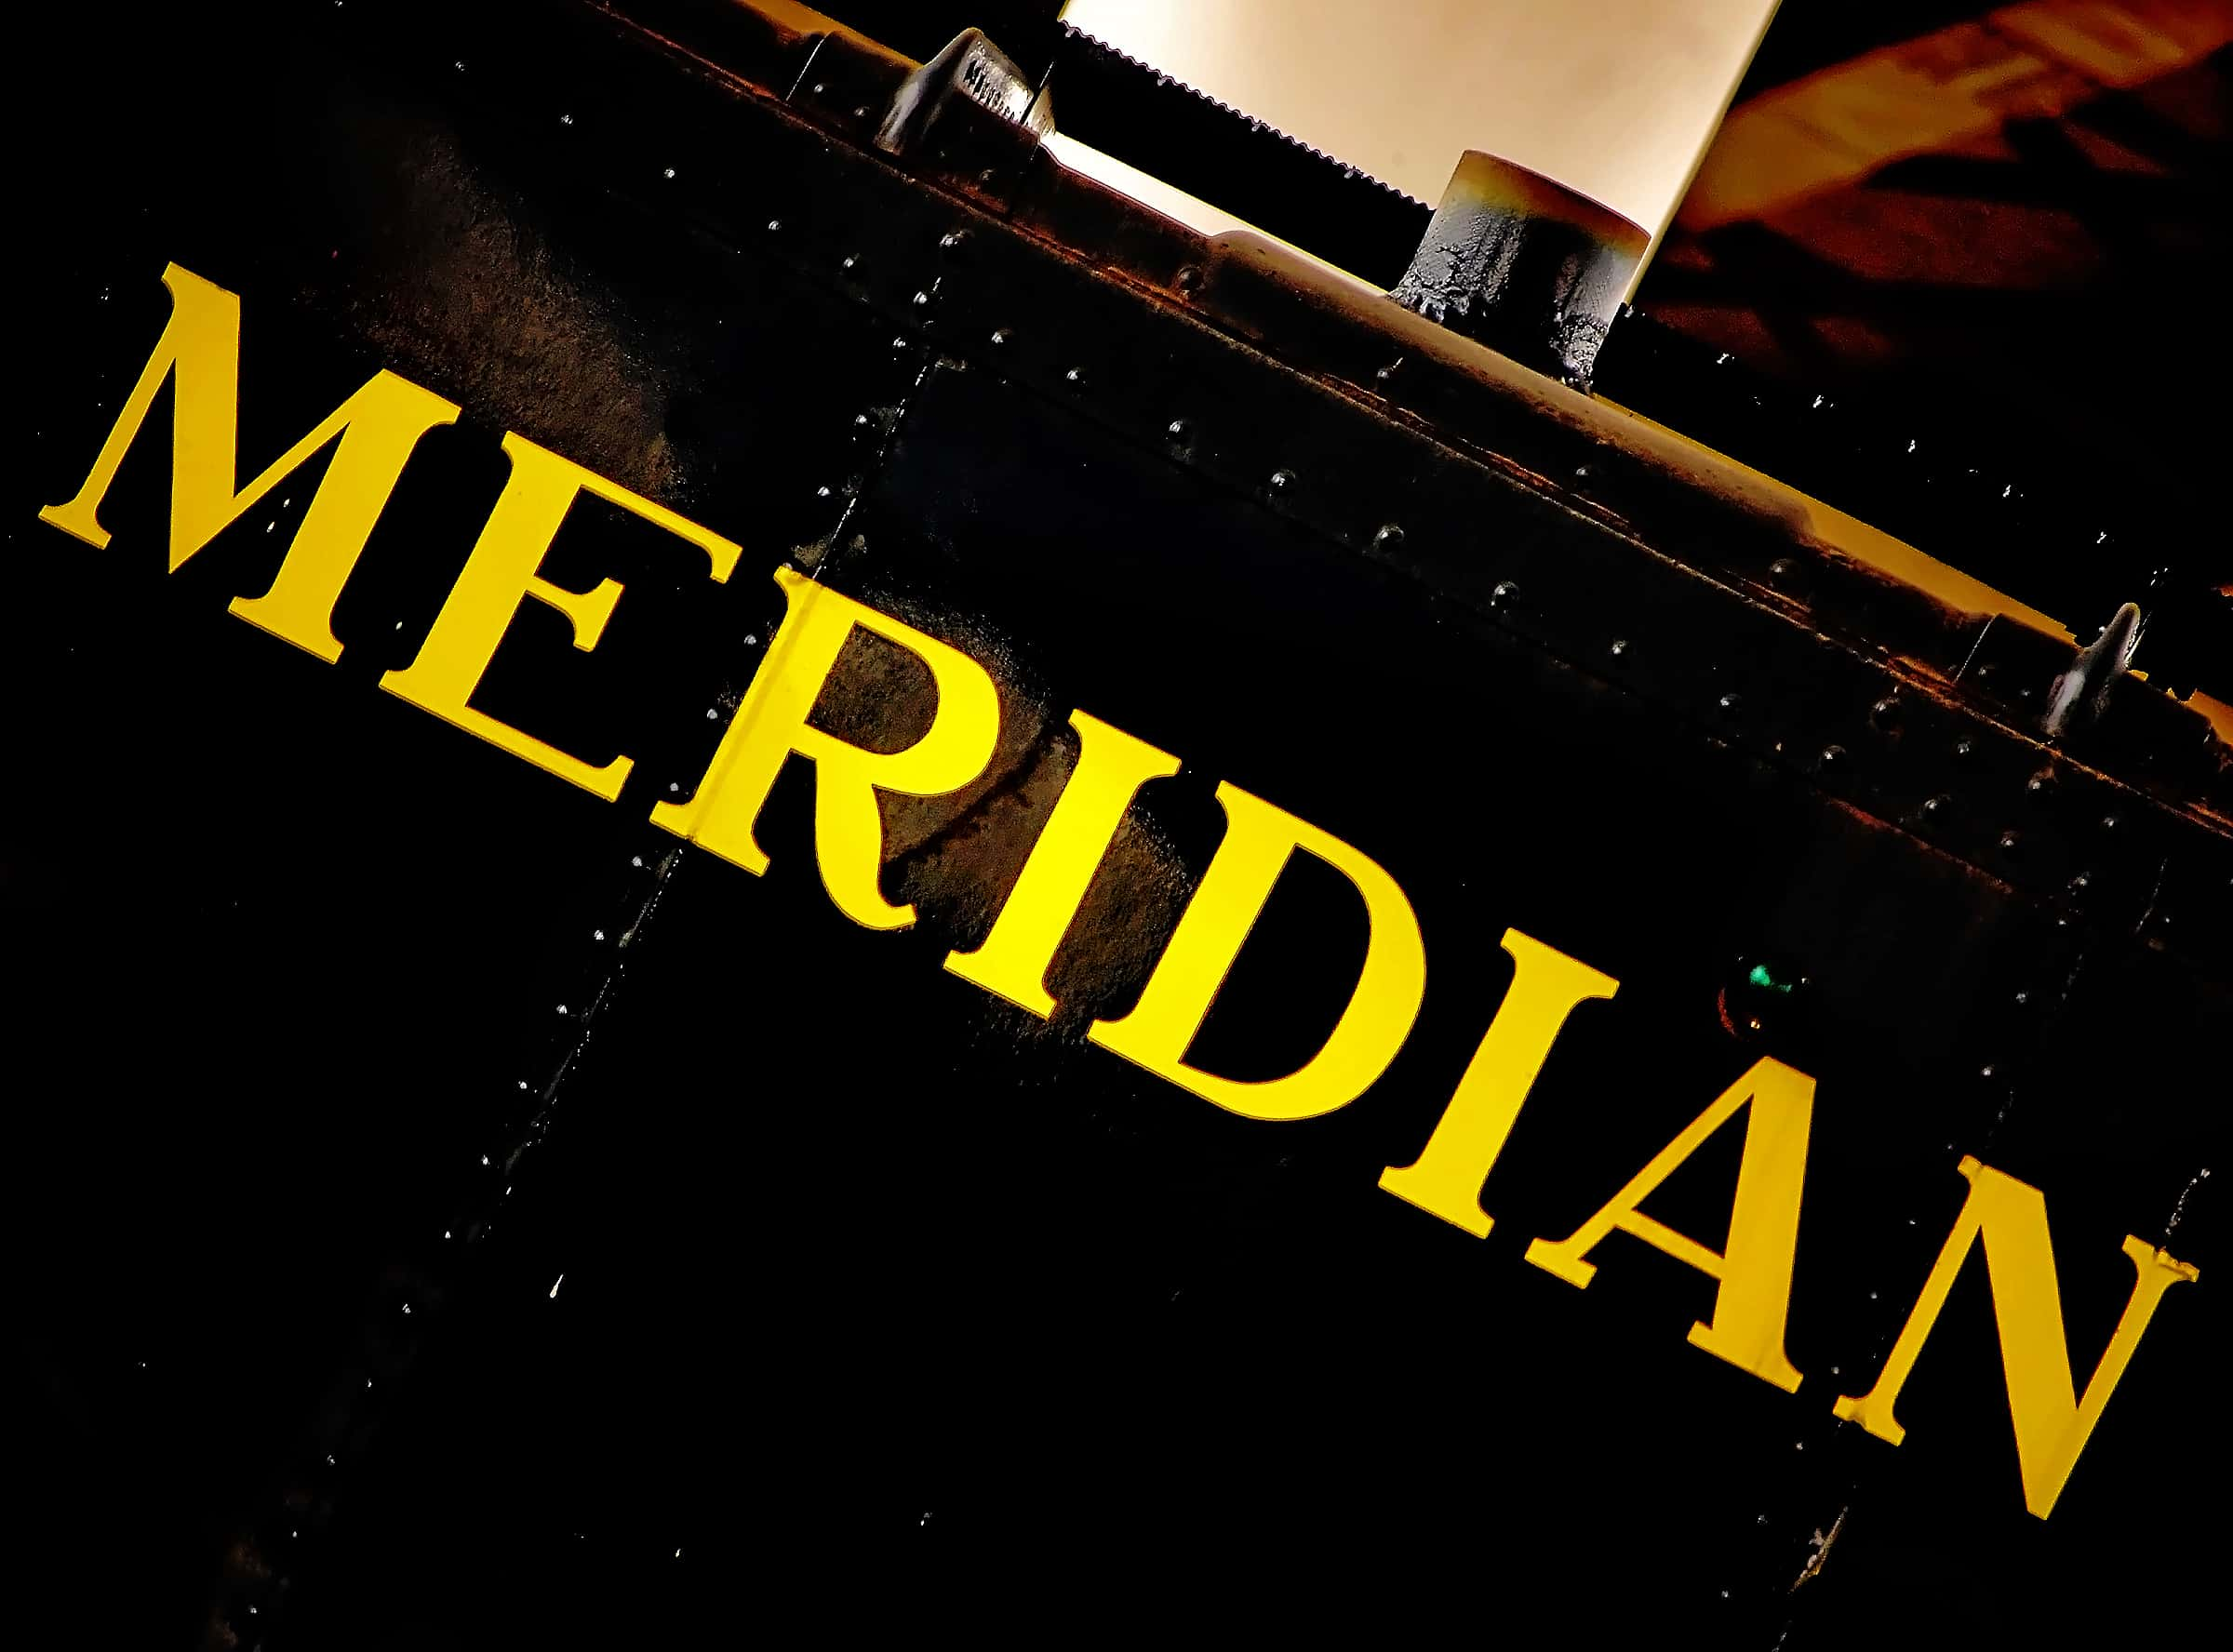 Meridian train sign